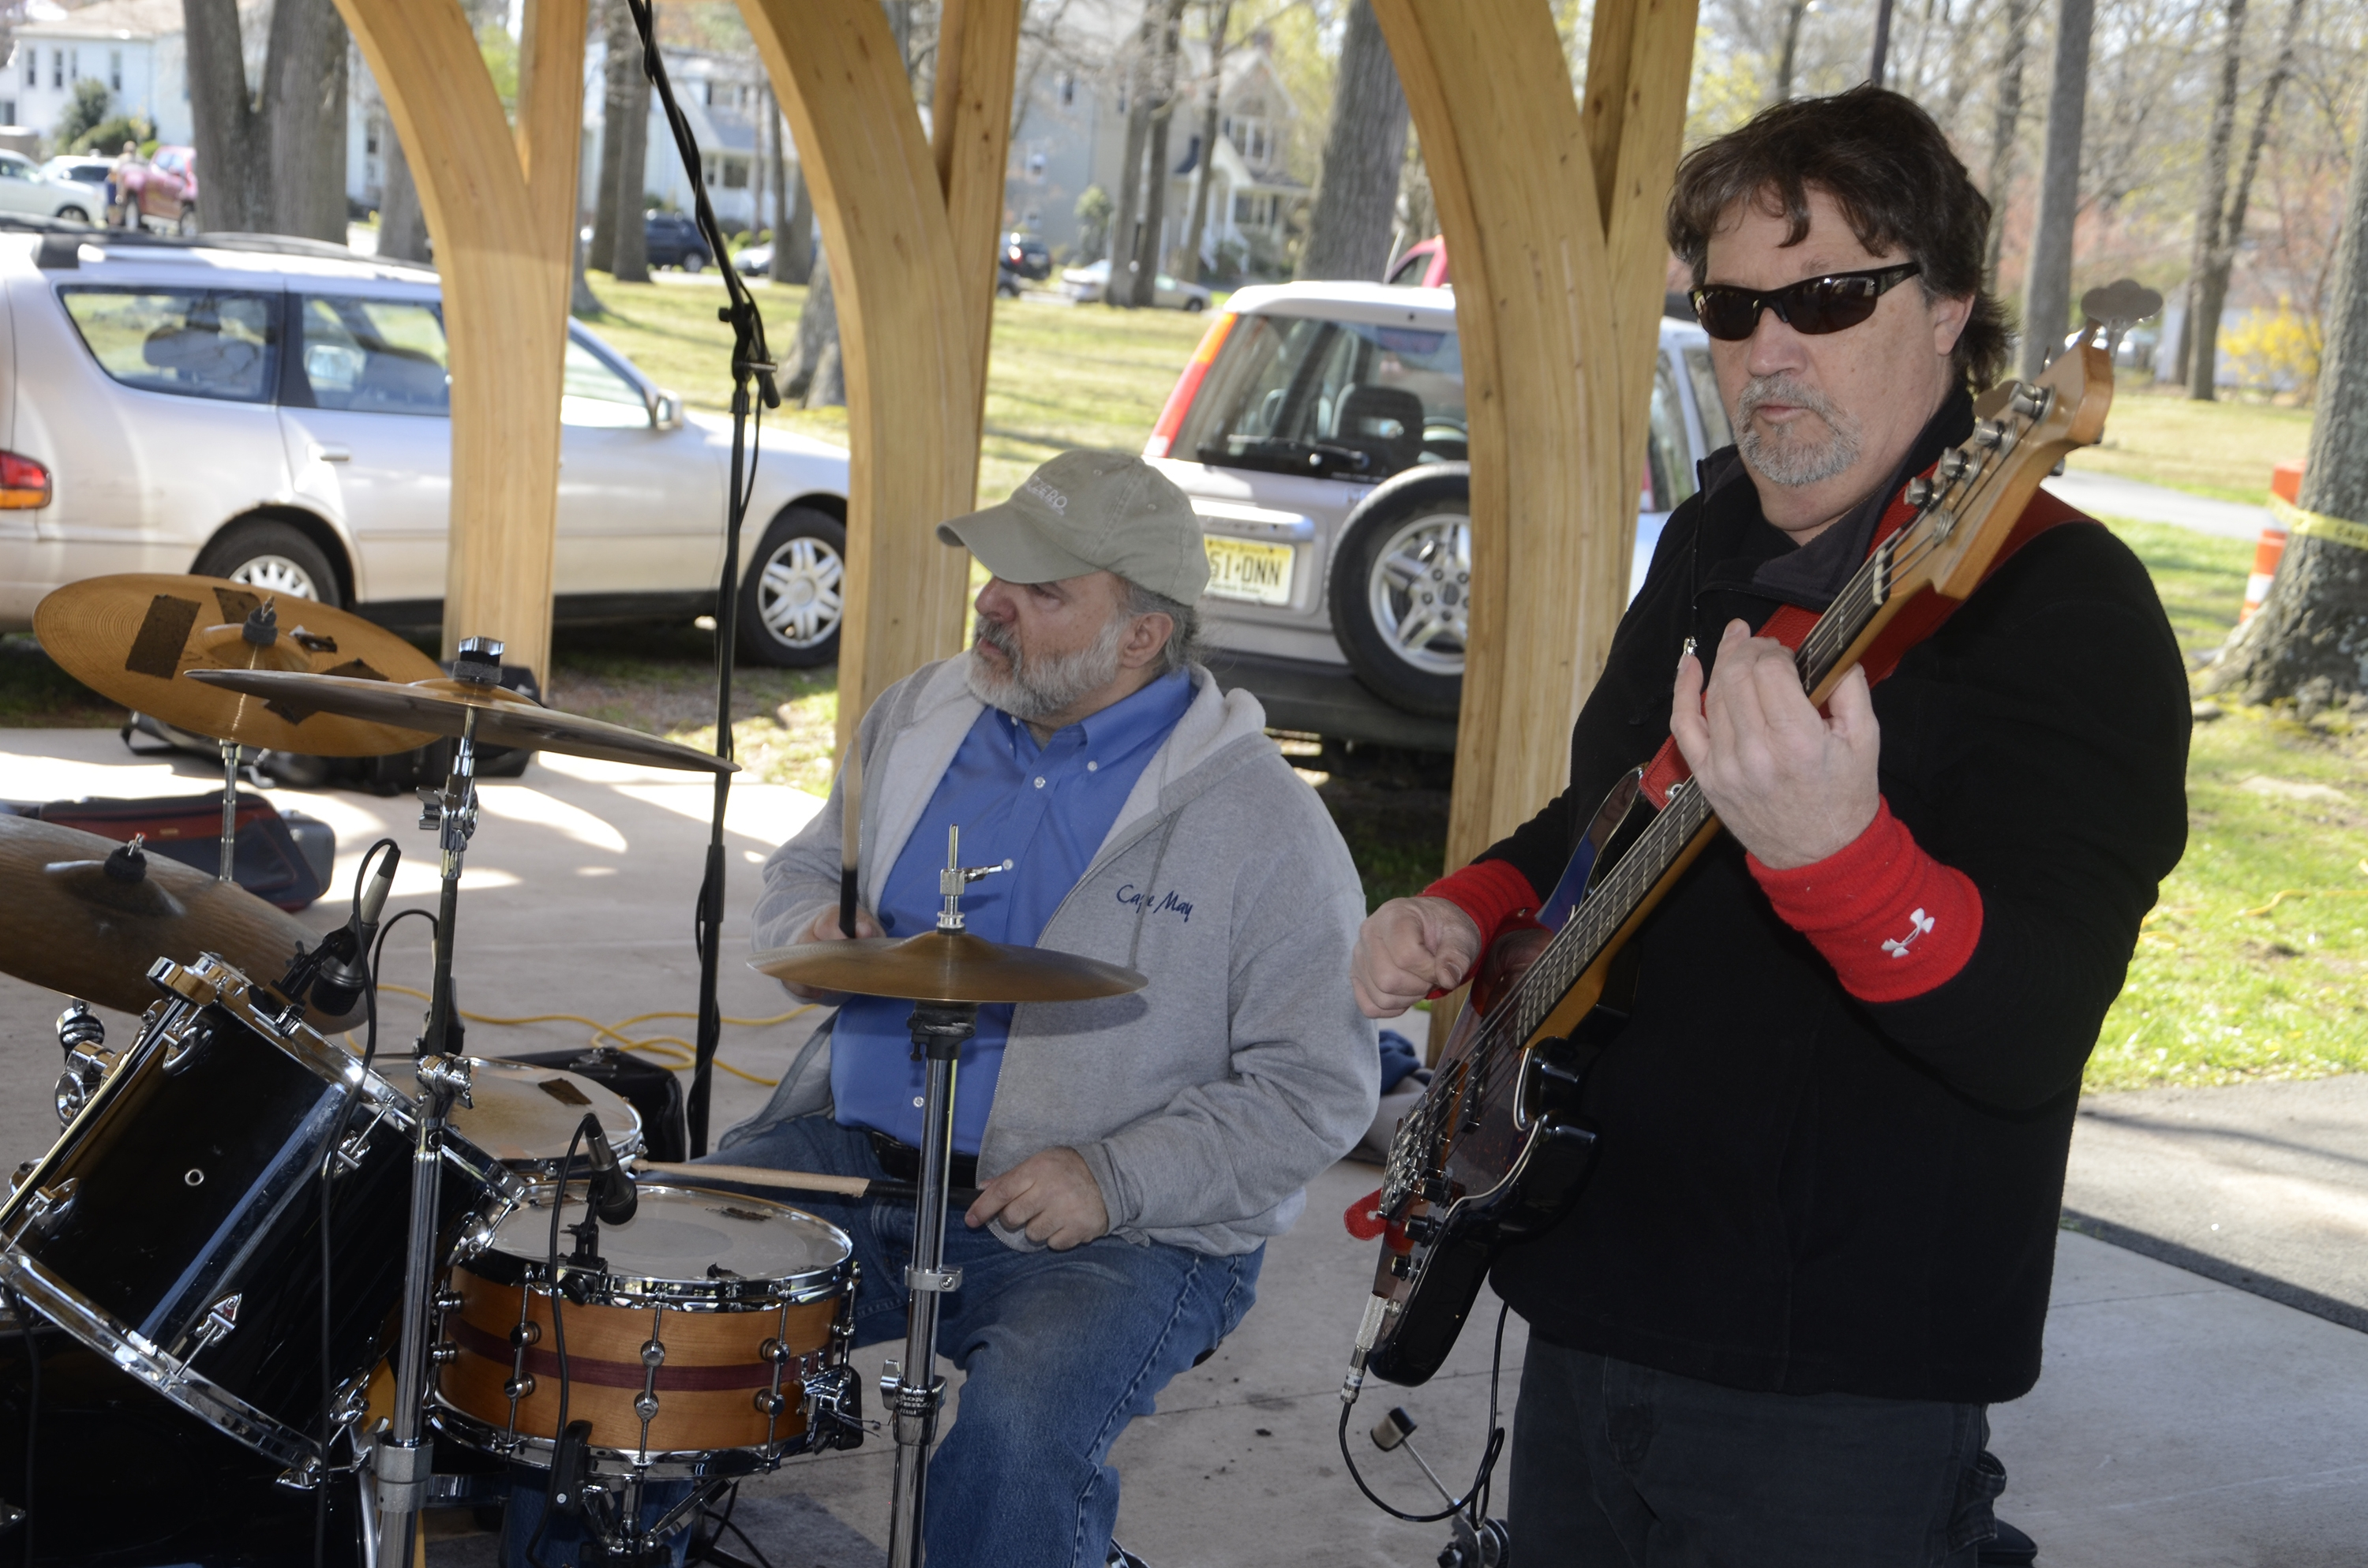 Scotch Plains-Based GoodWorks Band Headlines Event to Help Three-Year-Old Girl Fight Cancer